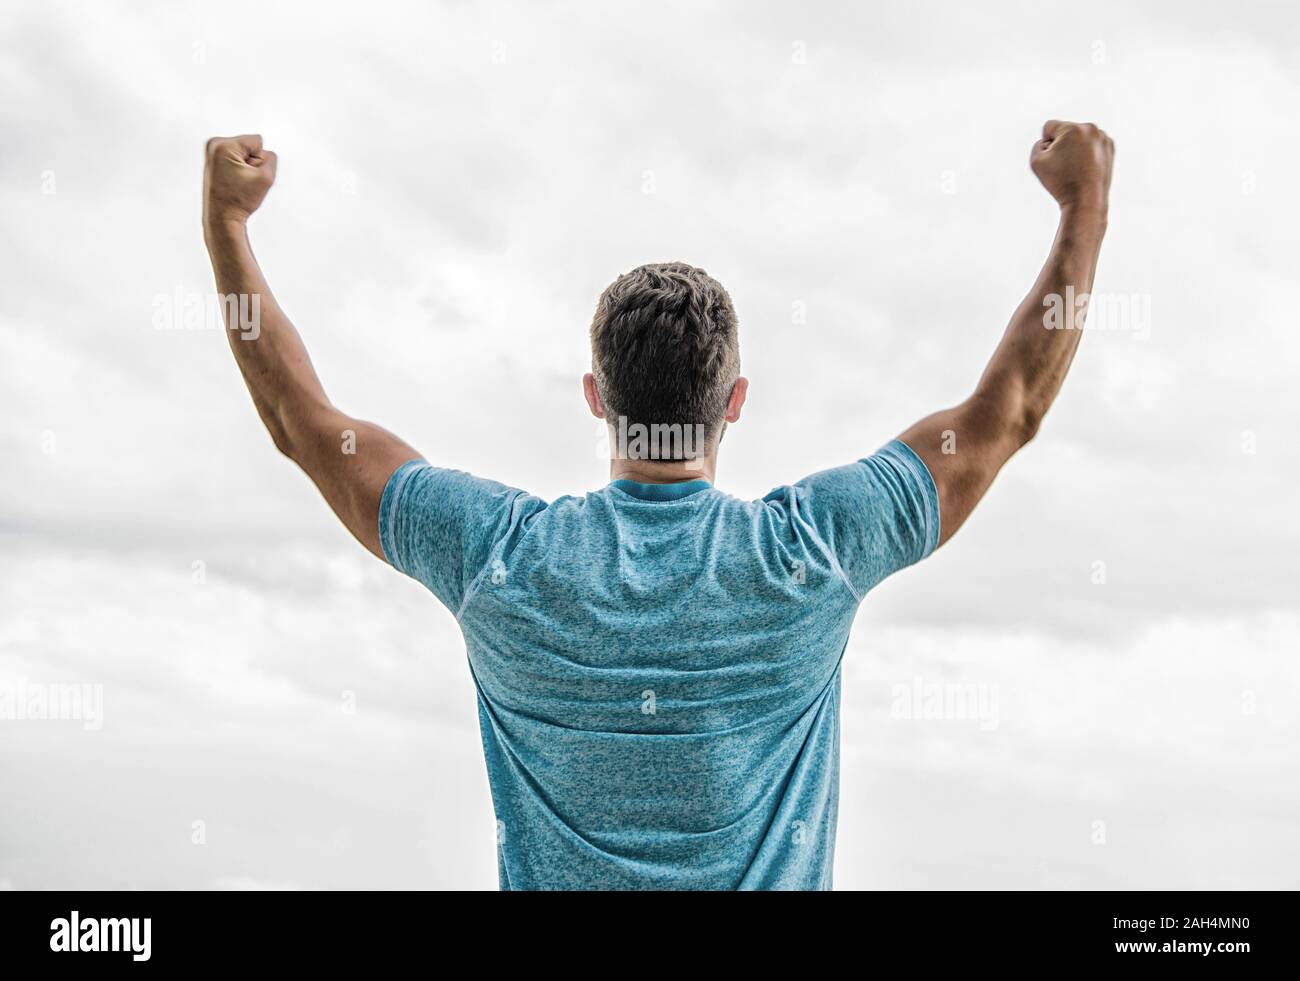 Victory and success. Champion winner. Future opportunity. Leadership and competition. Future concept. Looking forward in future. Strong muscular body feeling powerful rear view. Successful athlete. Stock Photo